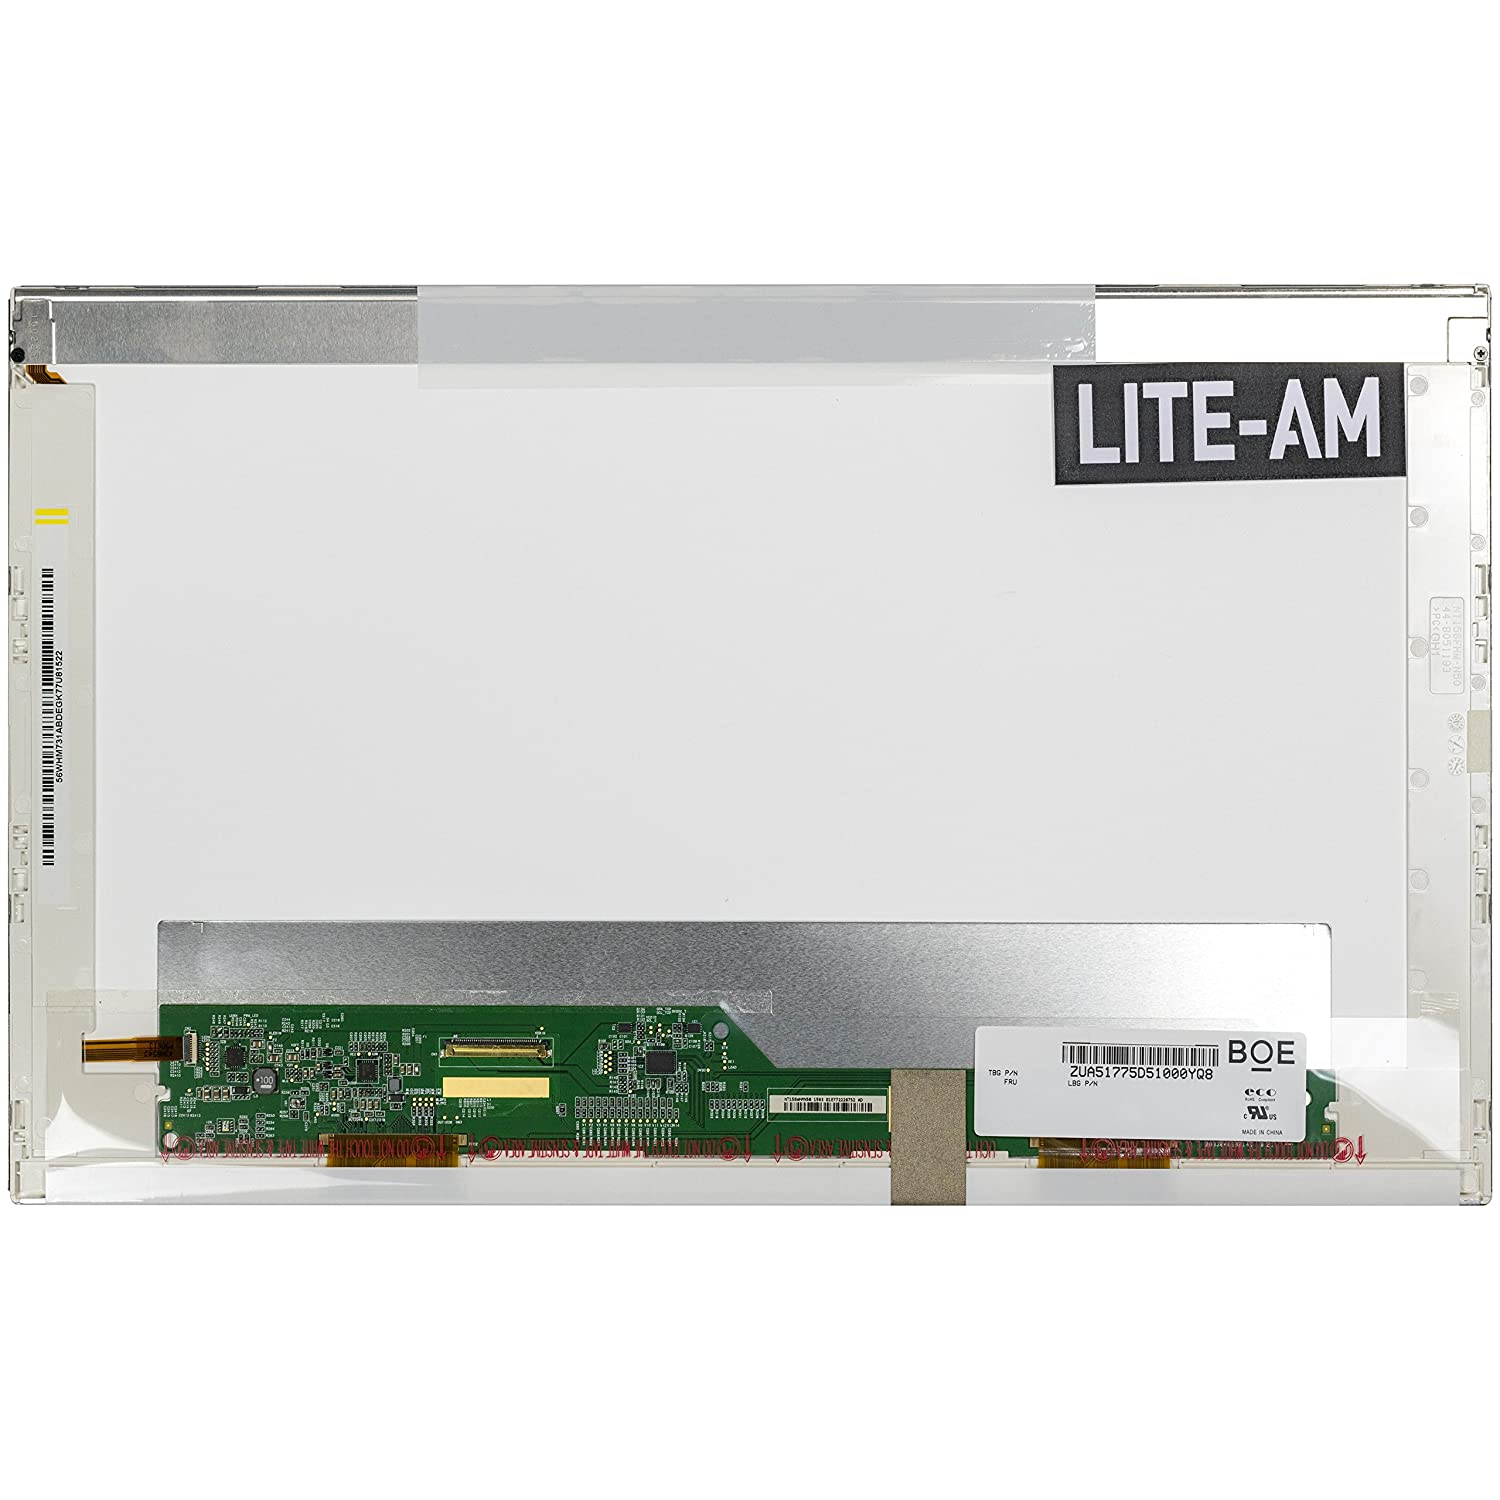 """Lite-am/® Replacement 15.6/"""" Laptop LED LCD Screen For Toshiba Satellite L850-162 L850-166 L850-1D4 L850-1D5 L850-1LK L850-1MT L850-1WC L855-10P L855-10T L855-10W L855-14Q L855-188 L855D-100 L855-S5372 P750-114 P750-13N P750-15L P850-12X P850-138 P"""